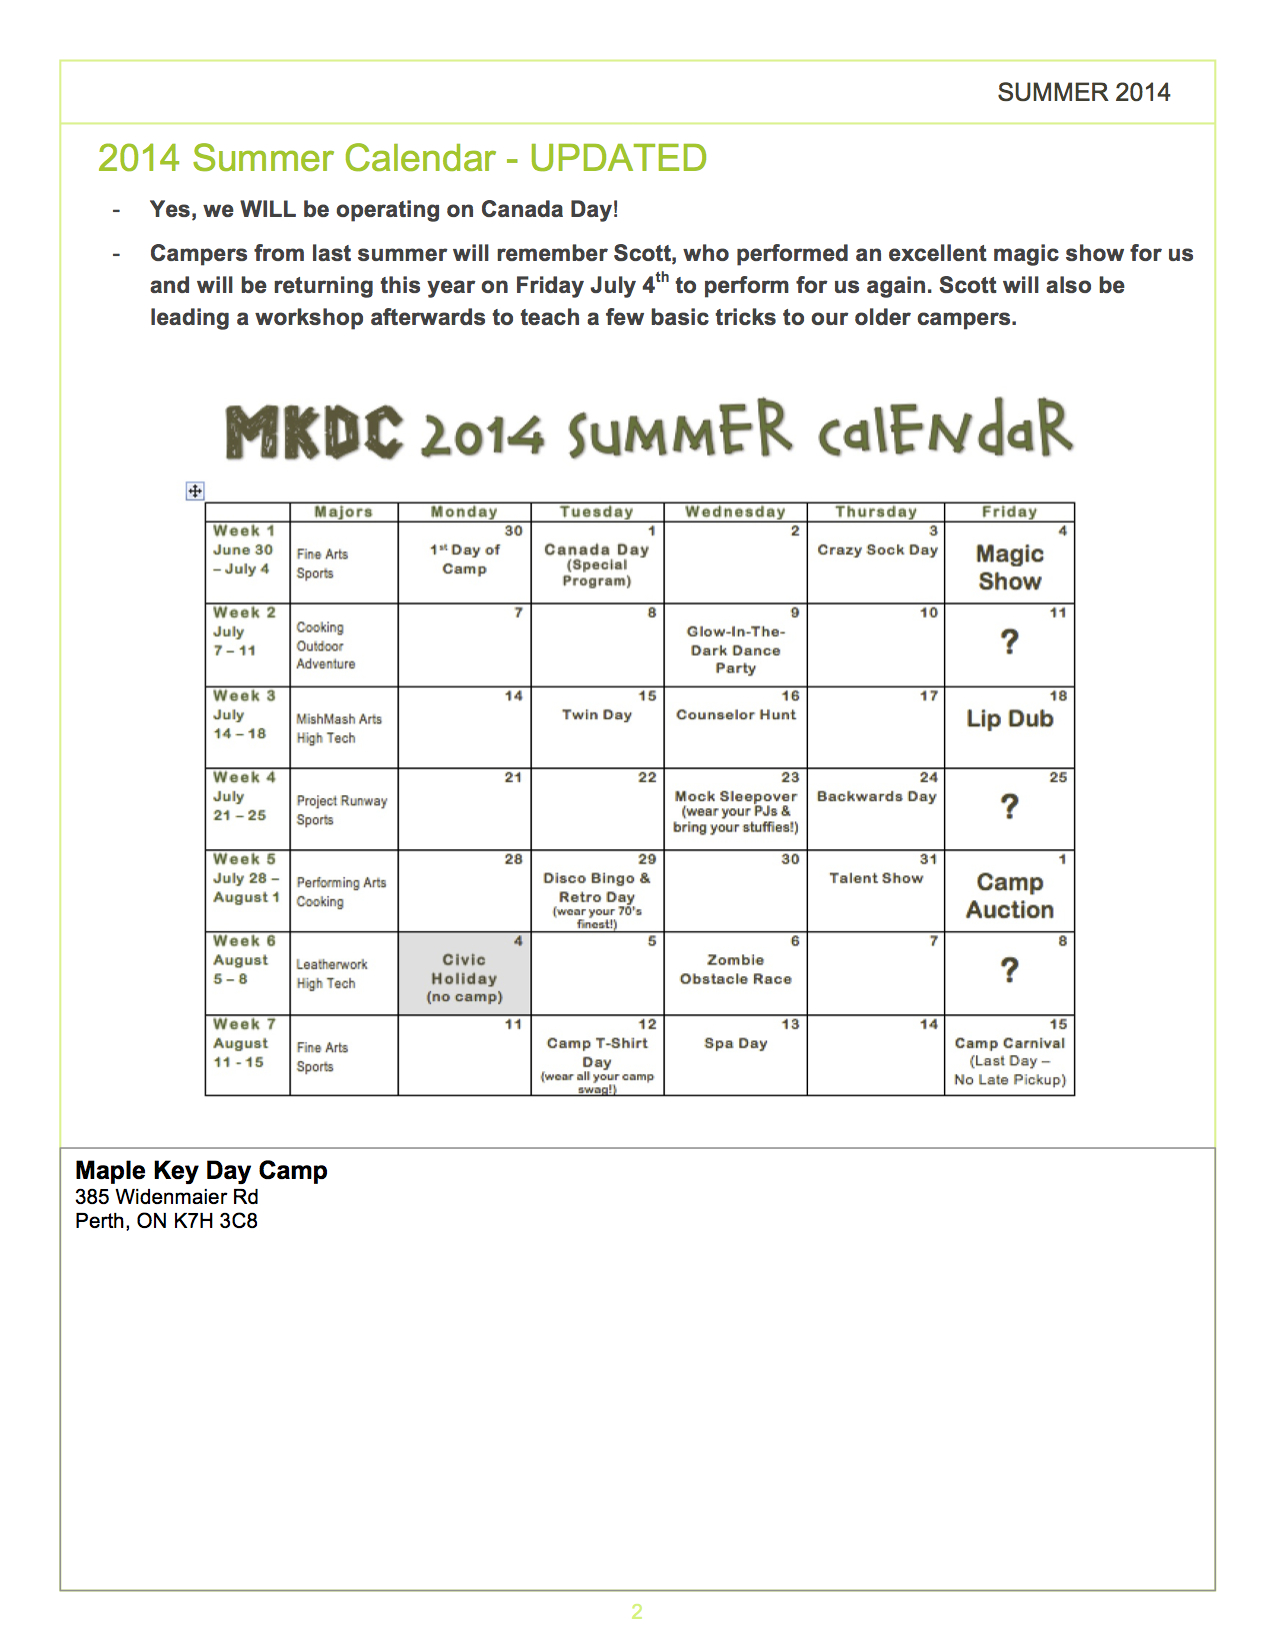 Blog - Page 10 of 28 - Maple Key Day Camp